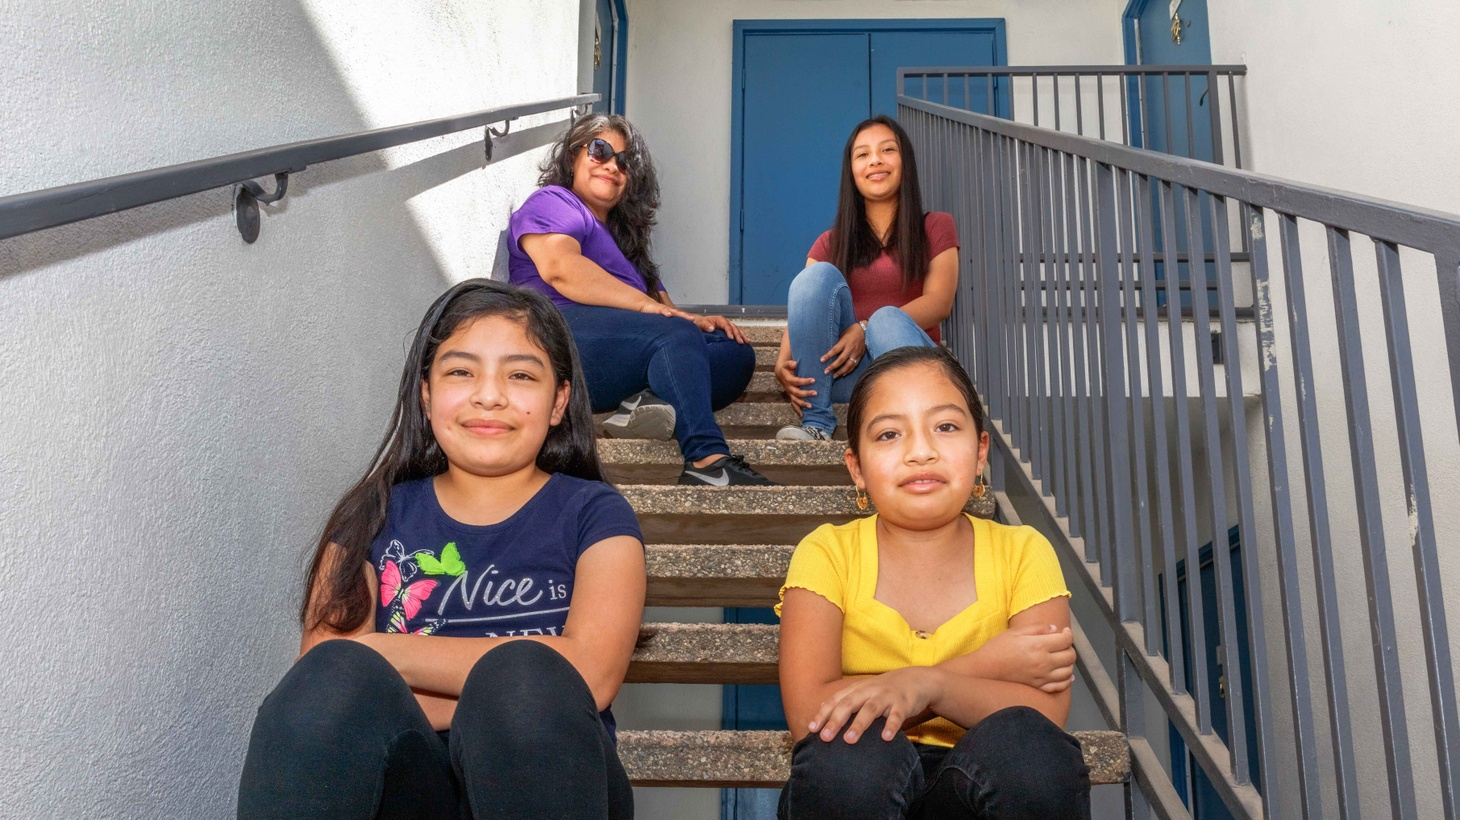 Mireya Pacheco (top left) and her three daughters, Mireyari, 17 (top right), Hossanna, 11, (bottom left) and Nefthali, 9 are beginning the new school year from their two-bedroom apartment in Pacoima. When the pandemic hit, dad lost work and the three girls started distance learning with a computer too outdated to run the programs they needed.